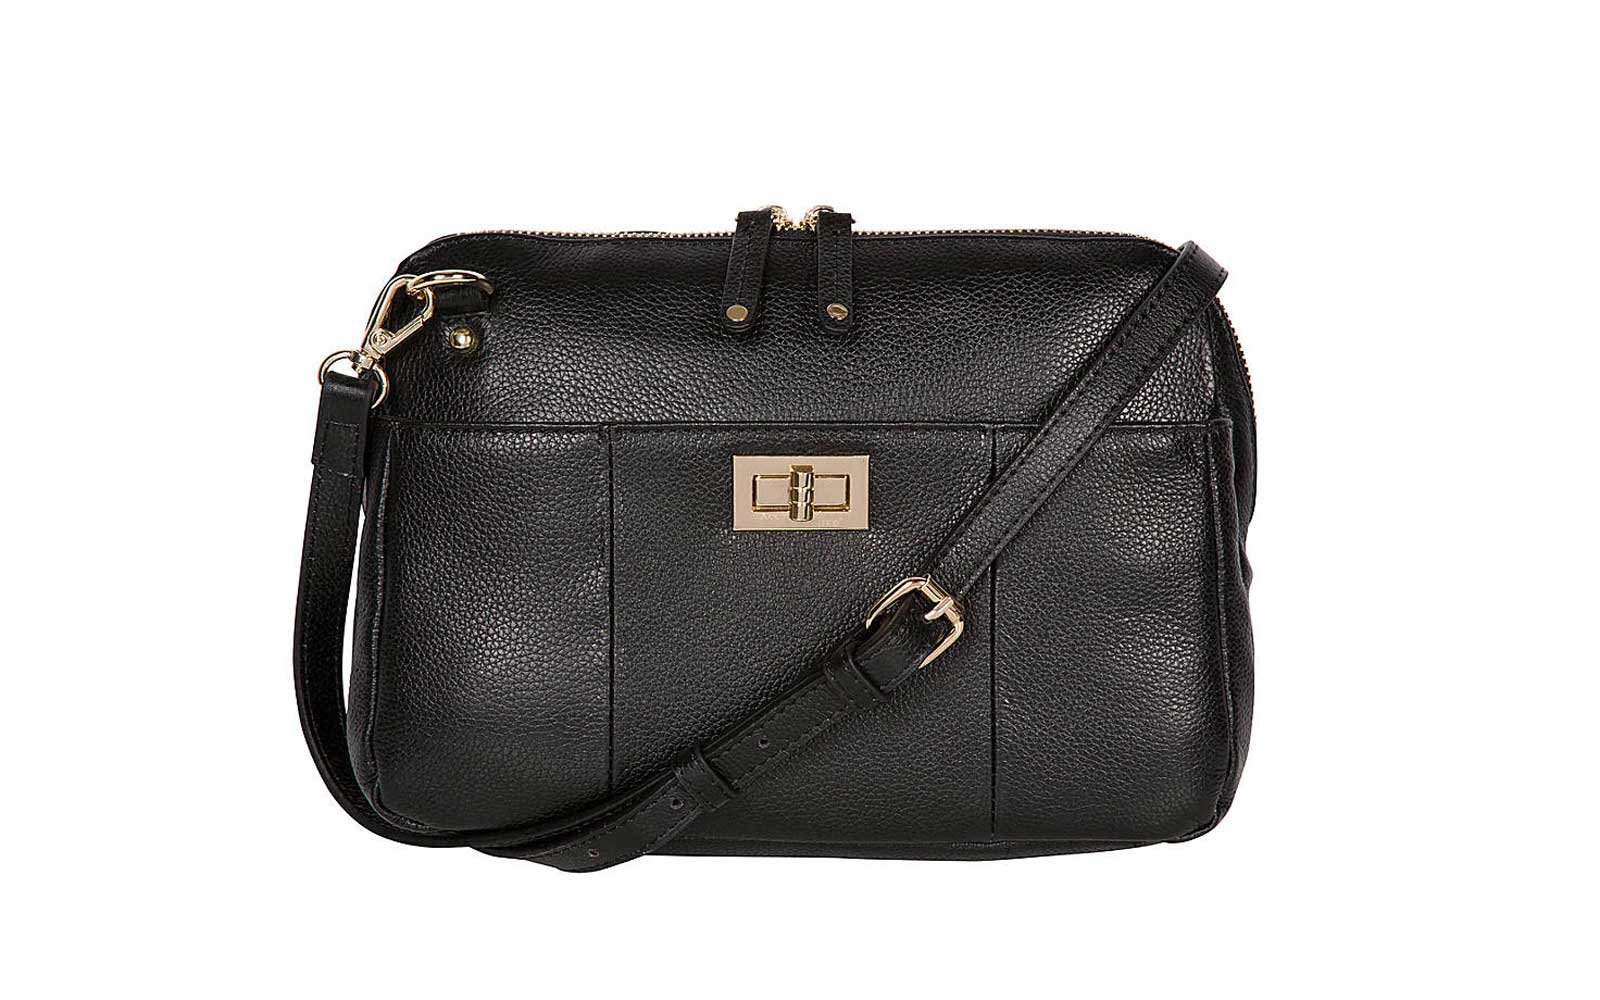 7af332e9a8 Access Denied Cross-body Purse